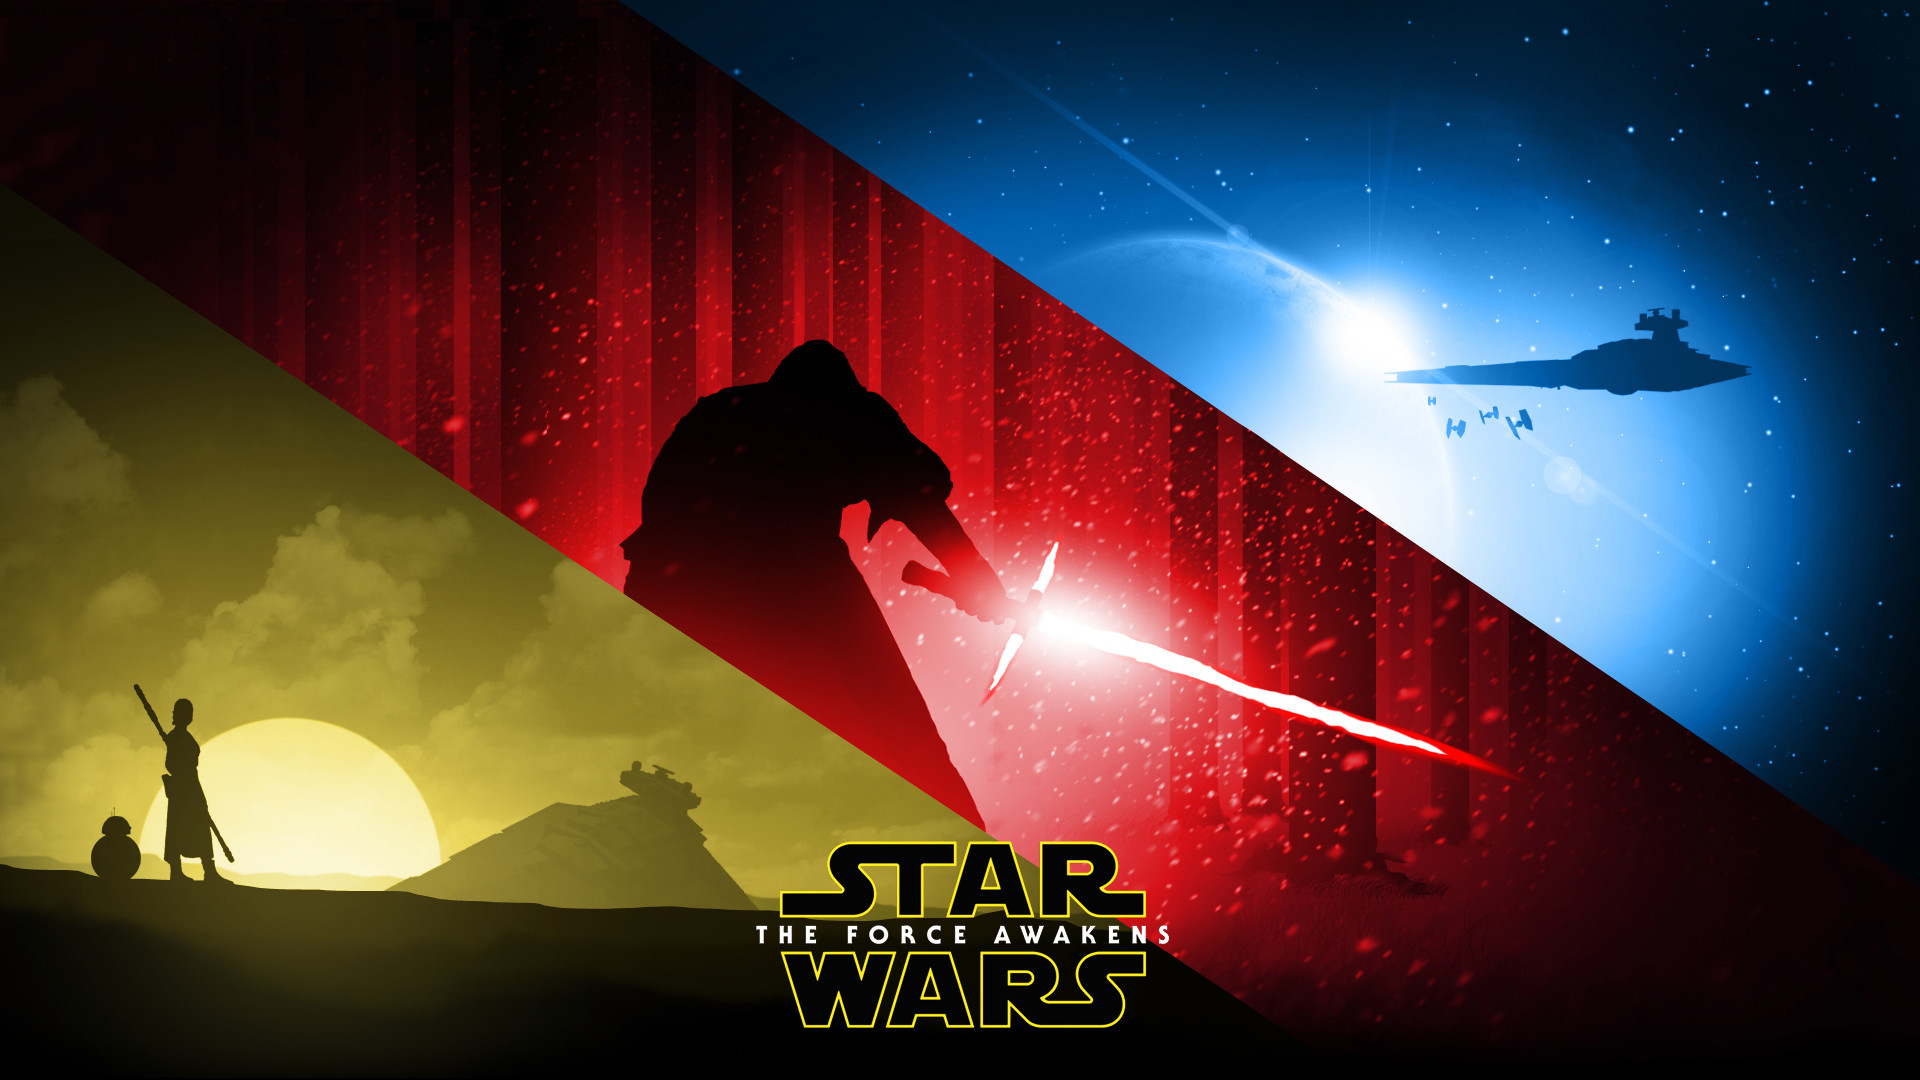 Star Wars The Force Awakens Background